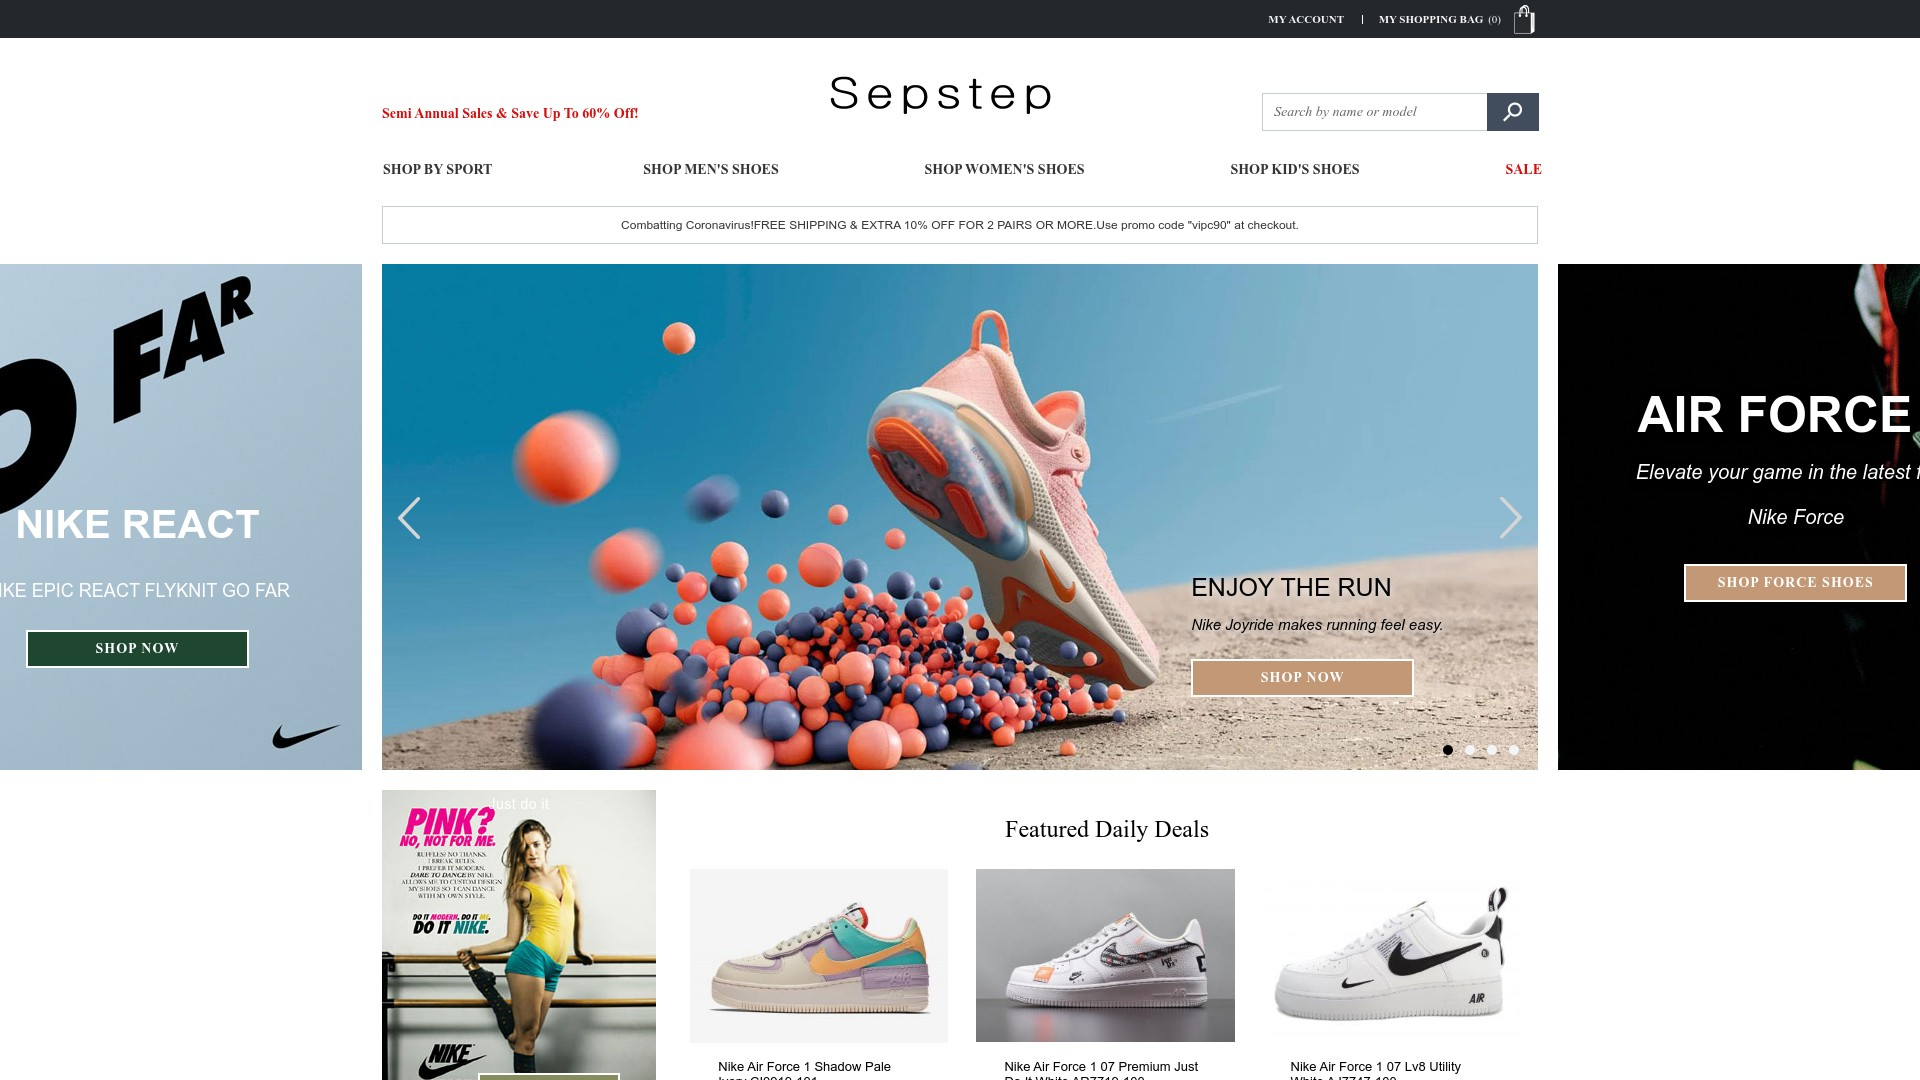 Is Sepstep a Scam? See the Review of the Online Store